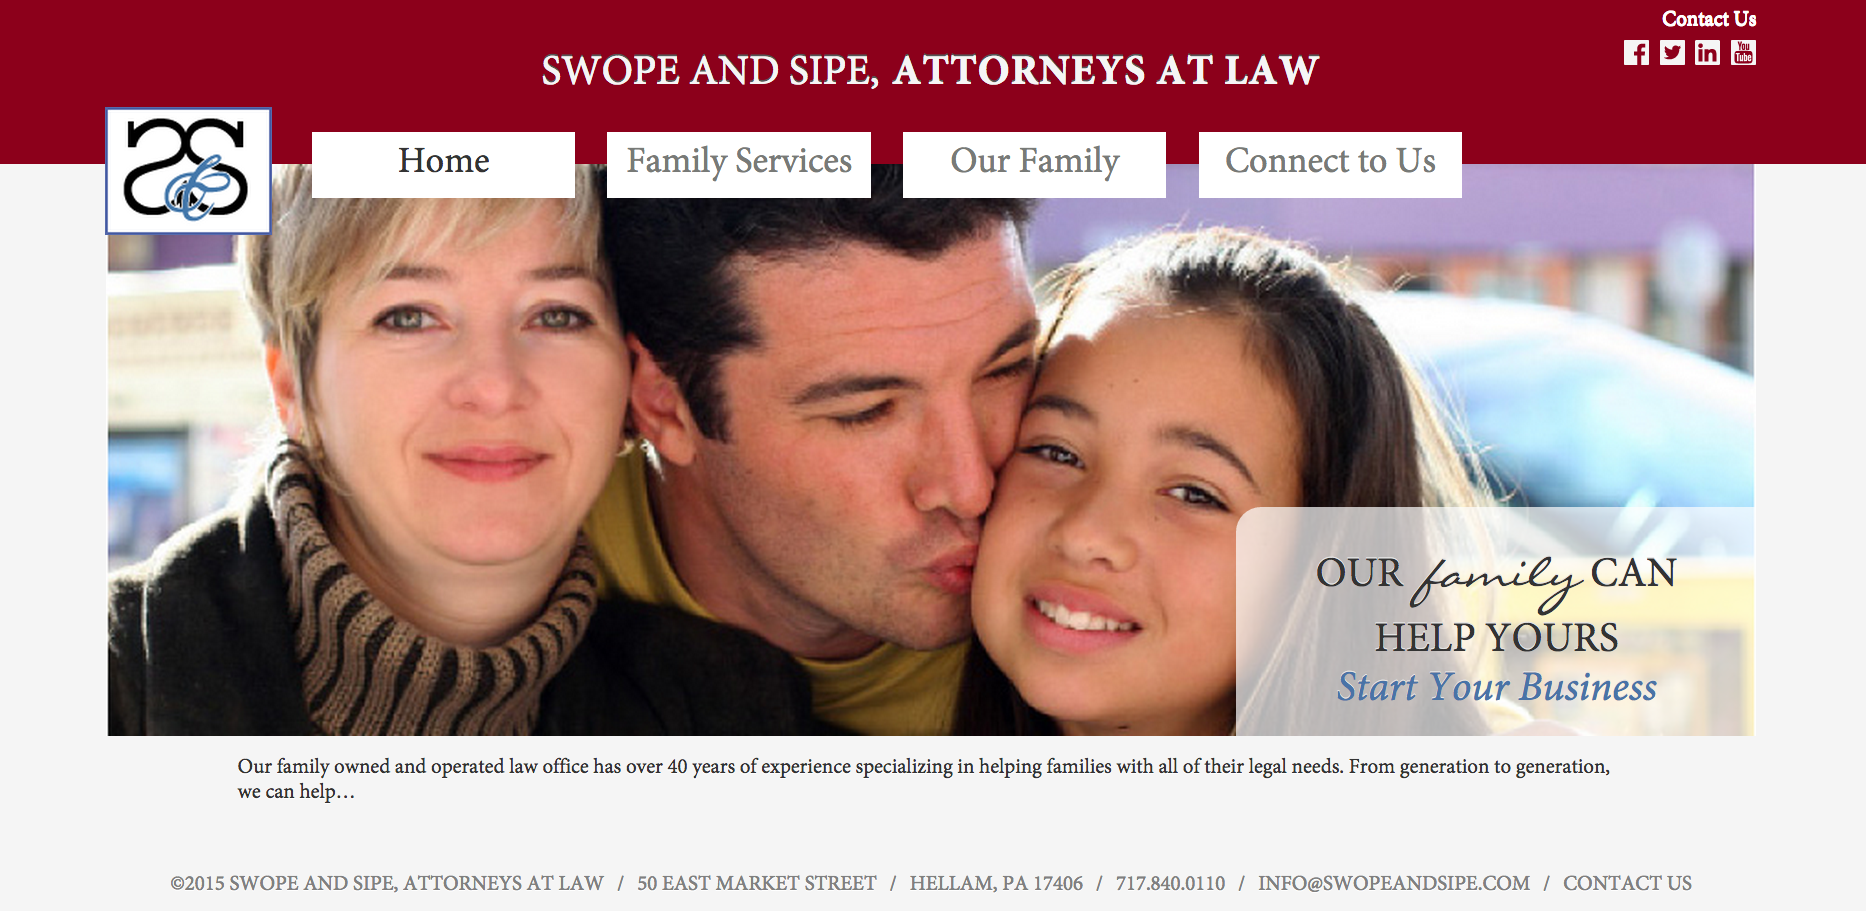 Swope and Sipe Attorney's at Law